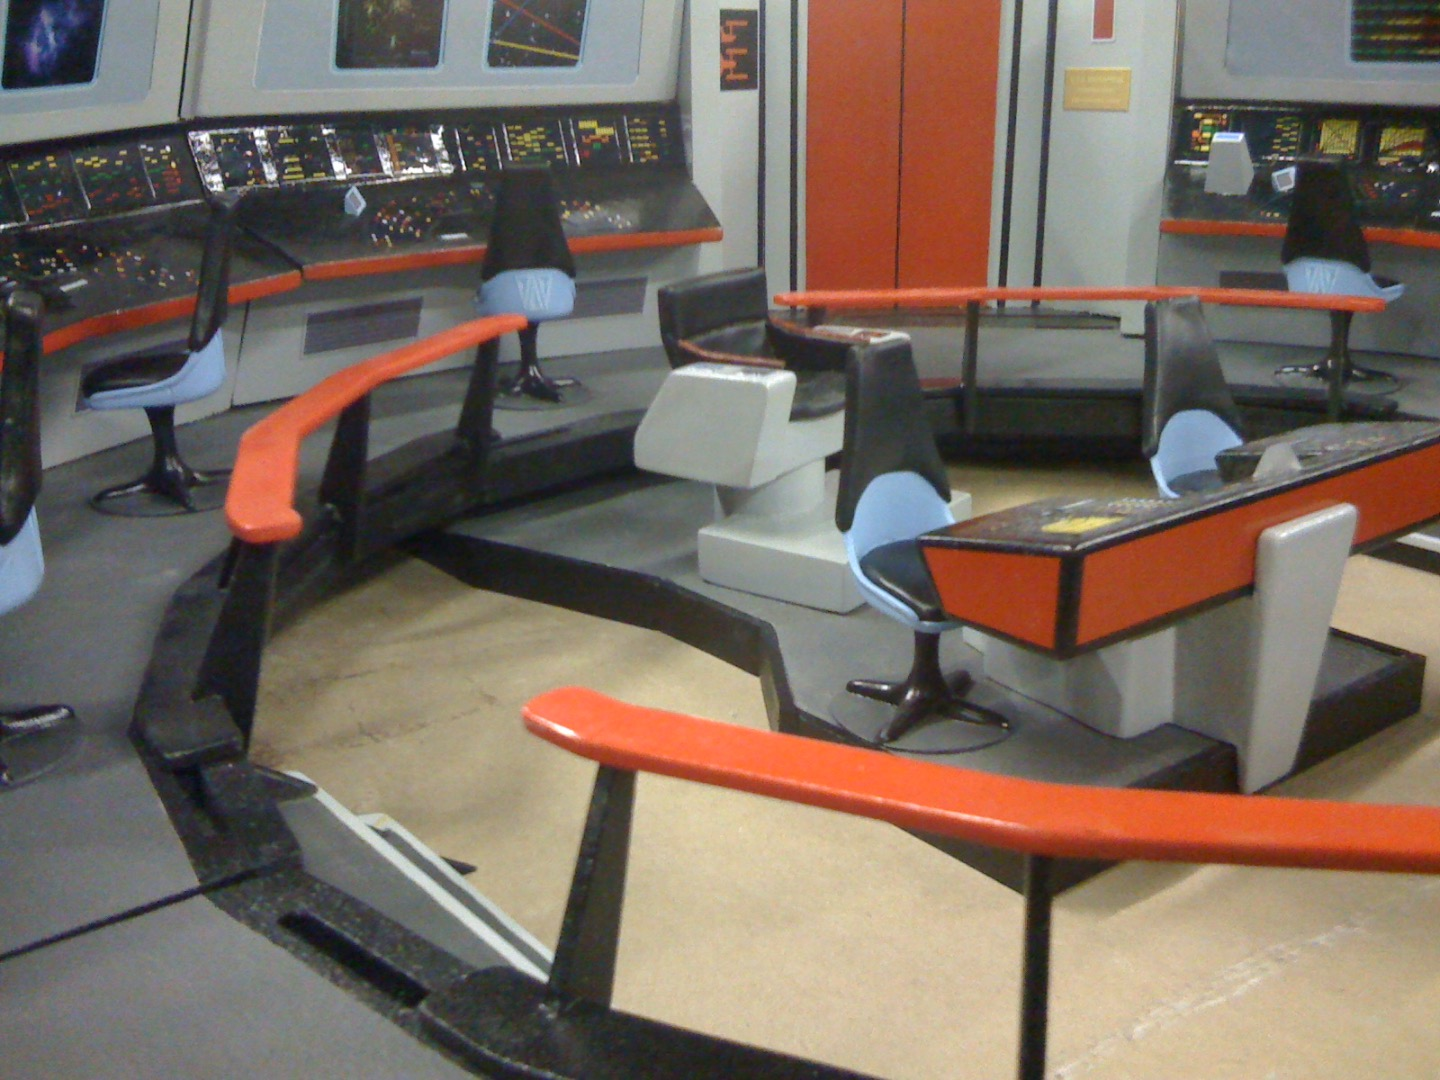 Howto Make Your Own Fantastically Detailed Star Trek Tos